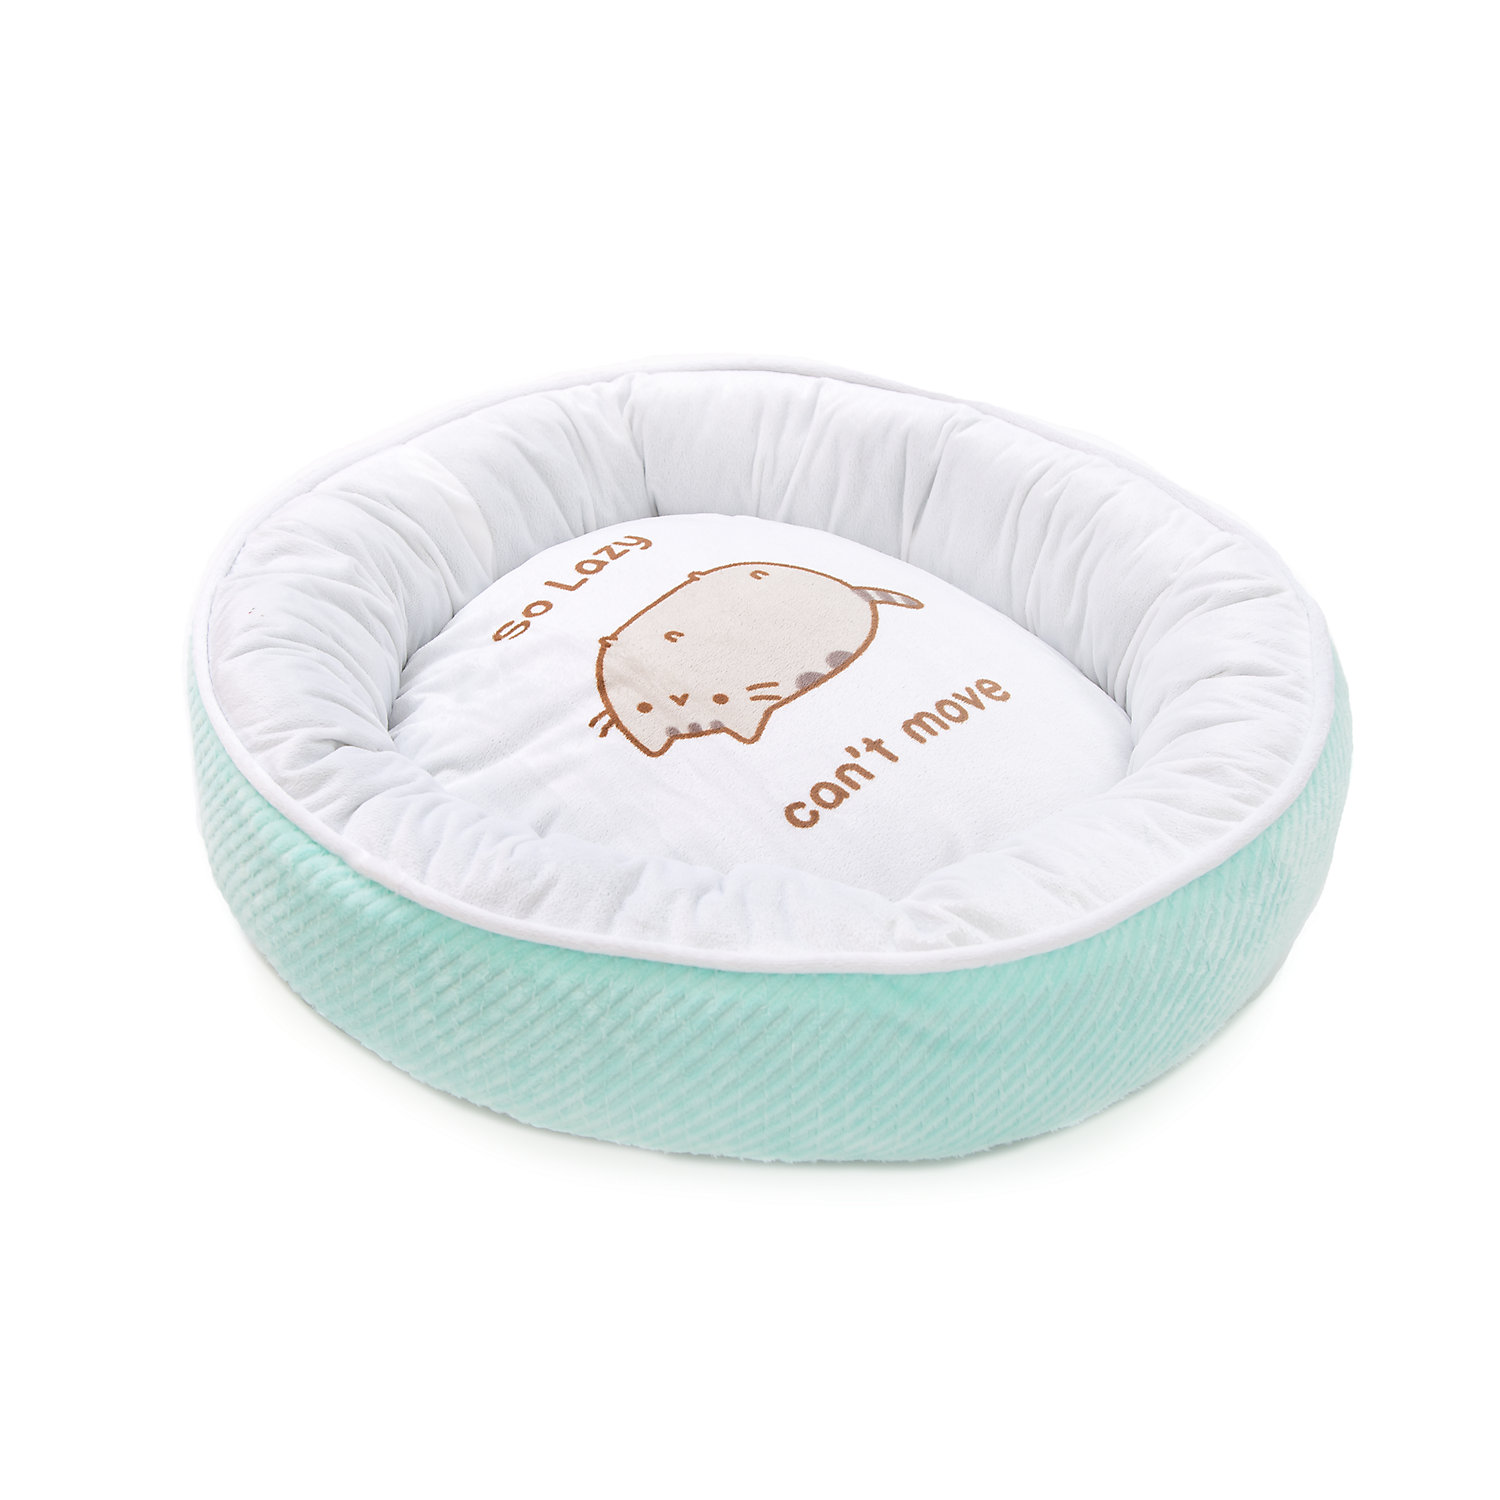 Pusheen Plush Cat Bed, 20